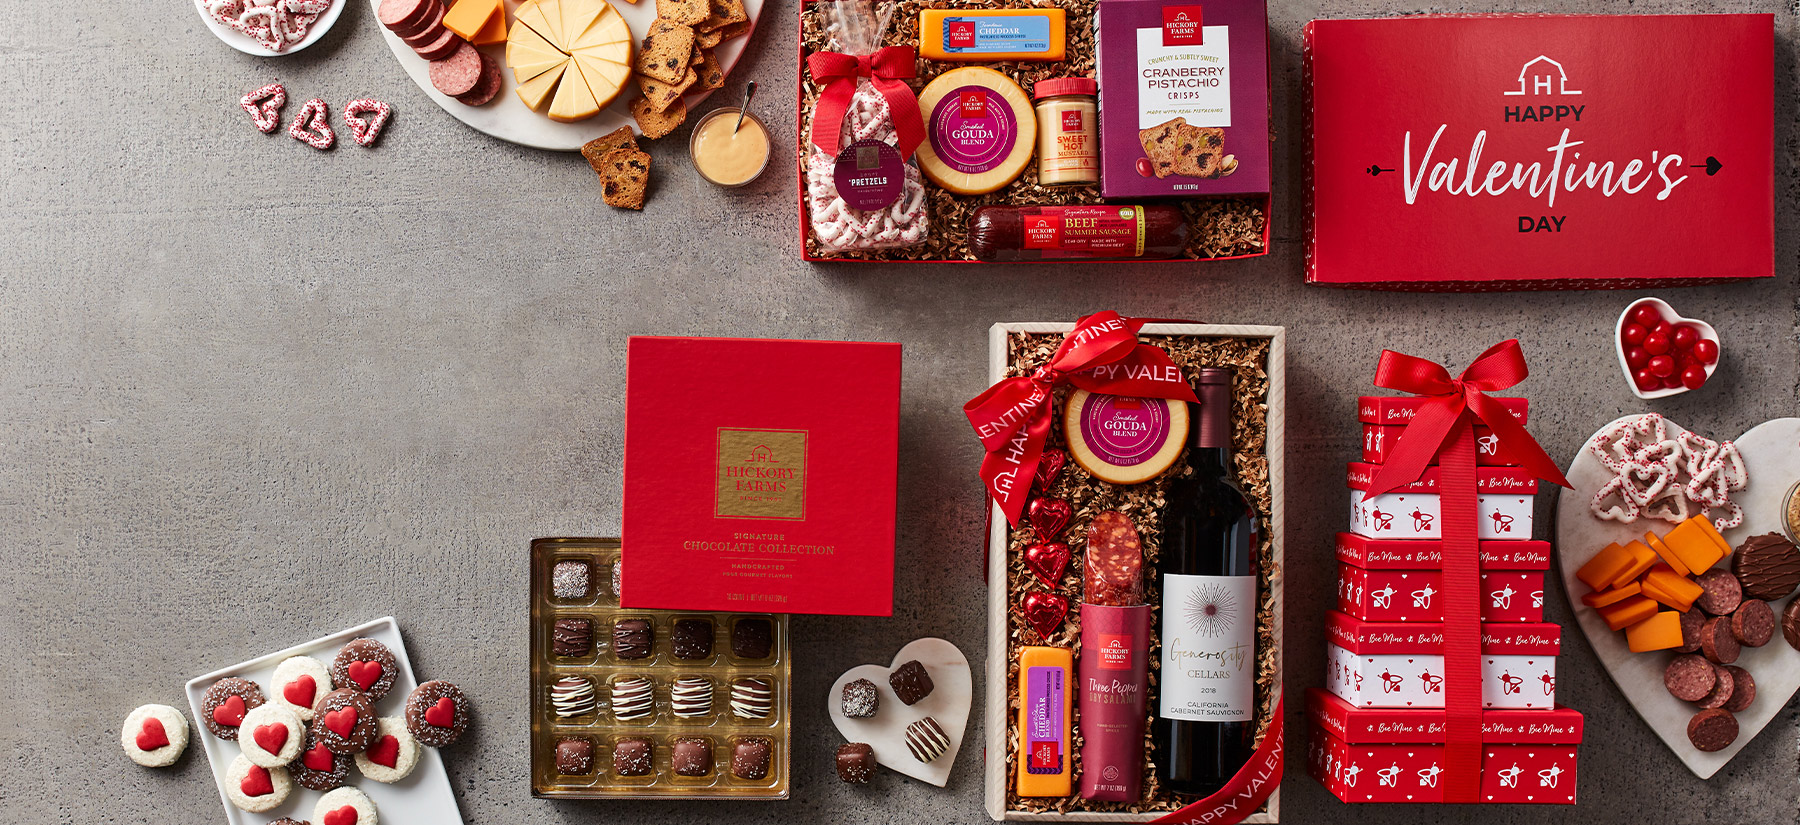 Hickory Farms Gift Baskets Specialty Gourmet Products